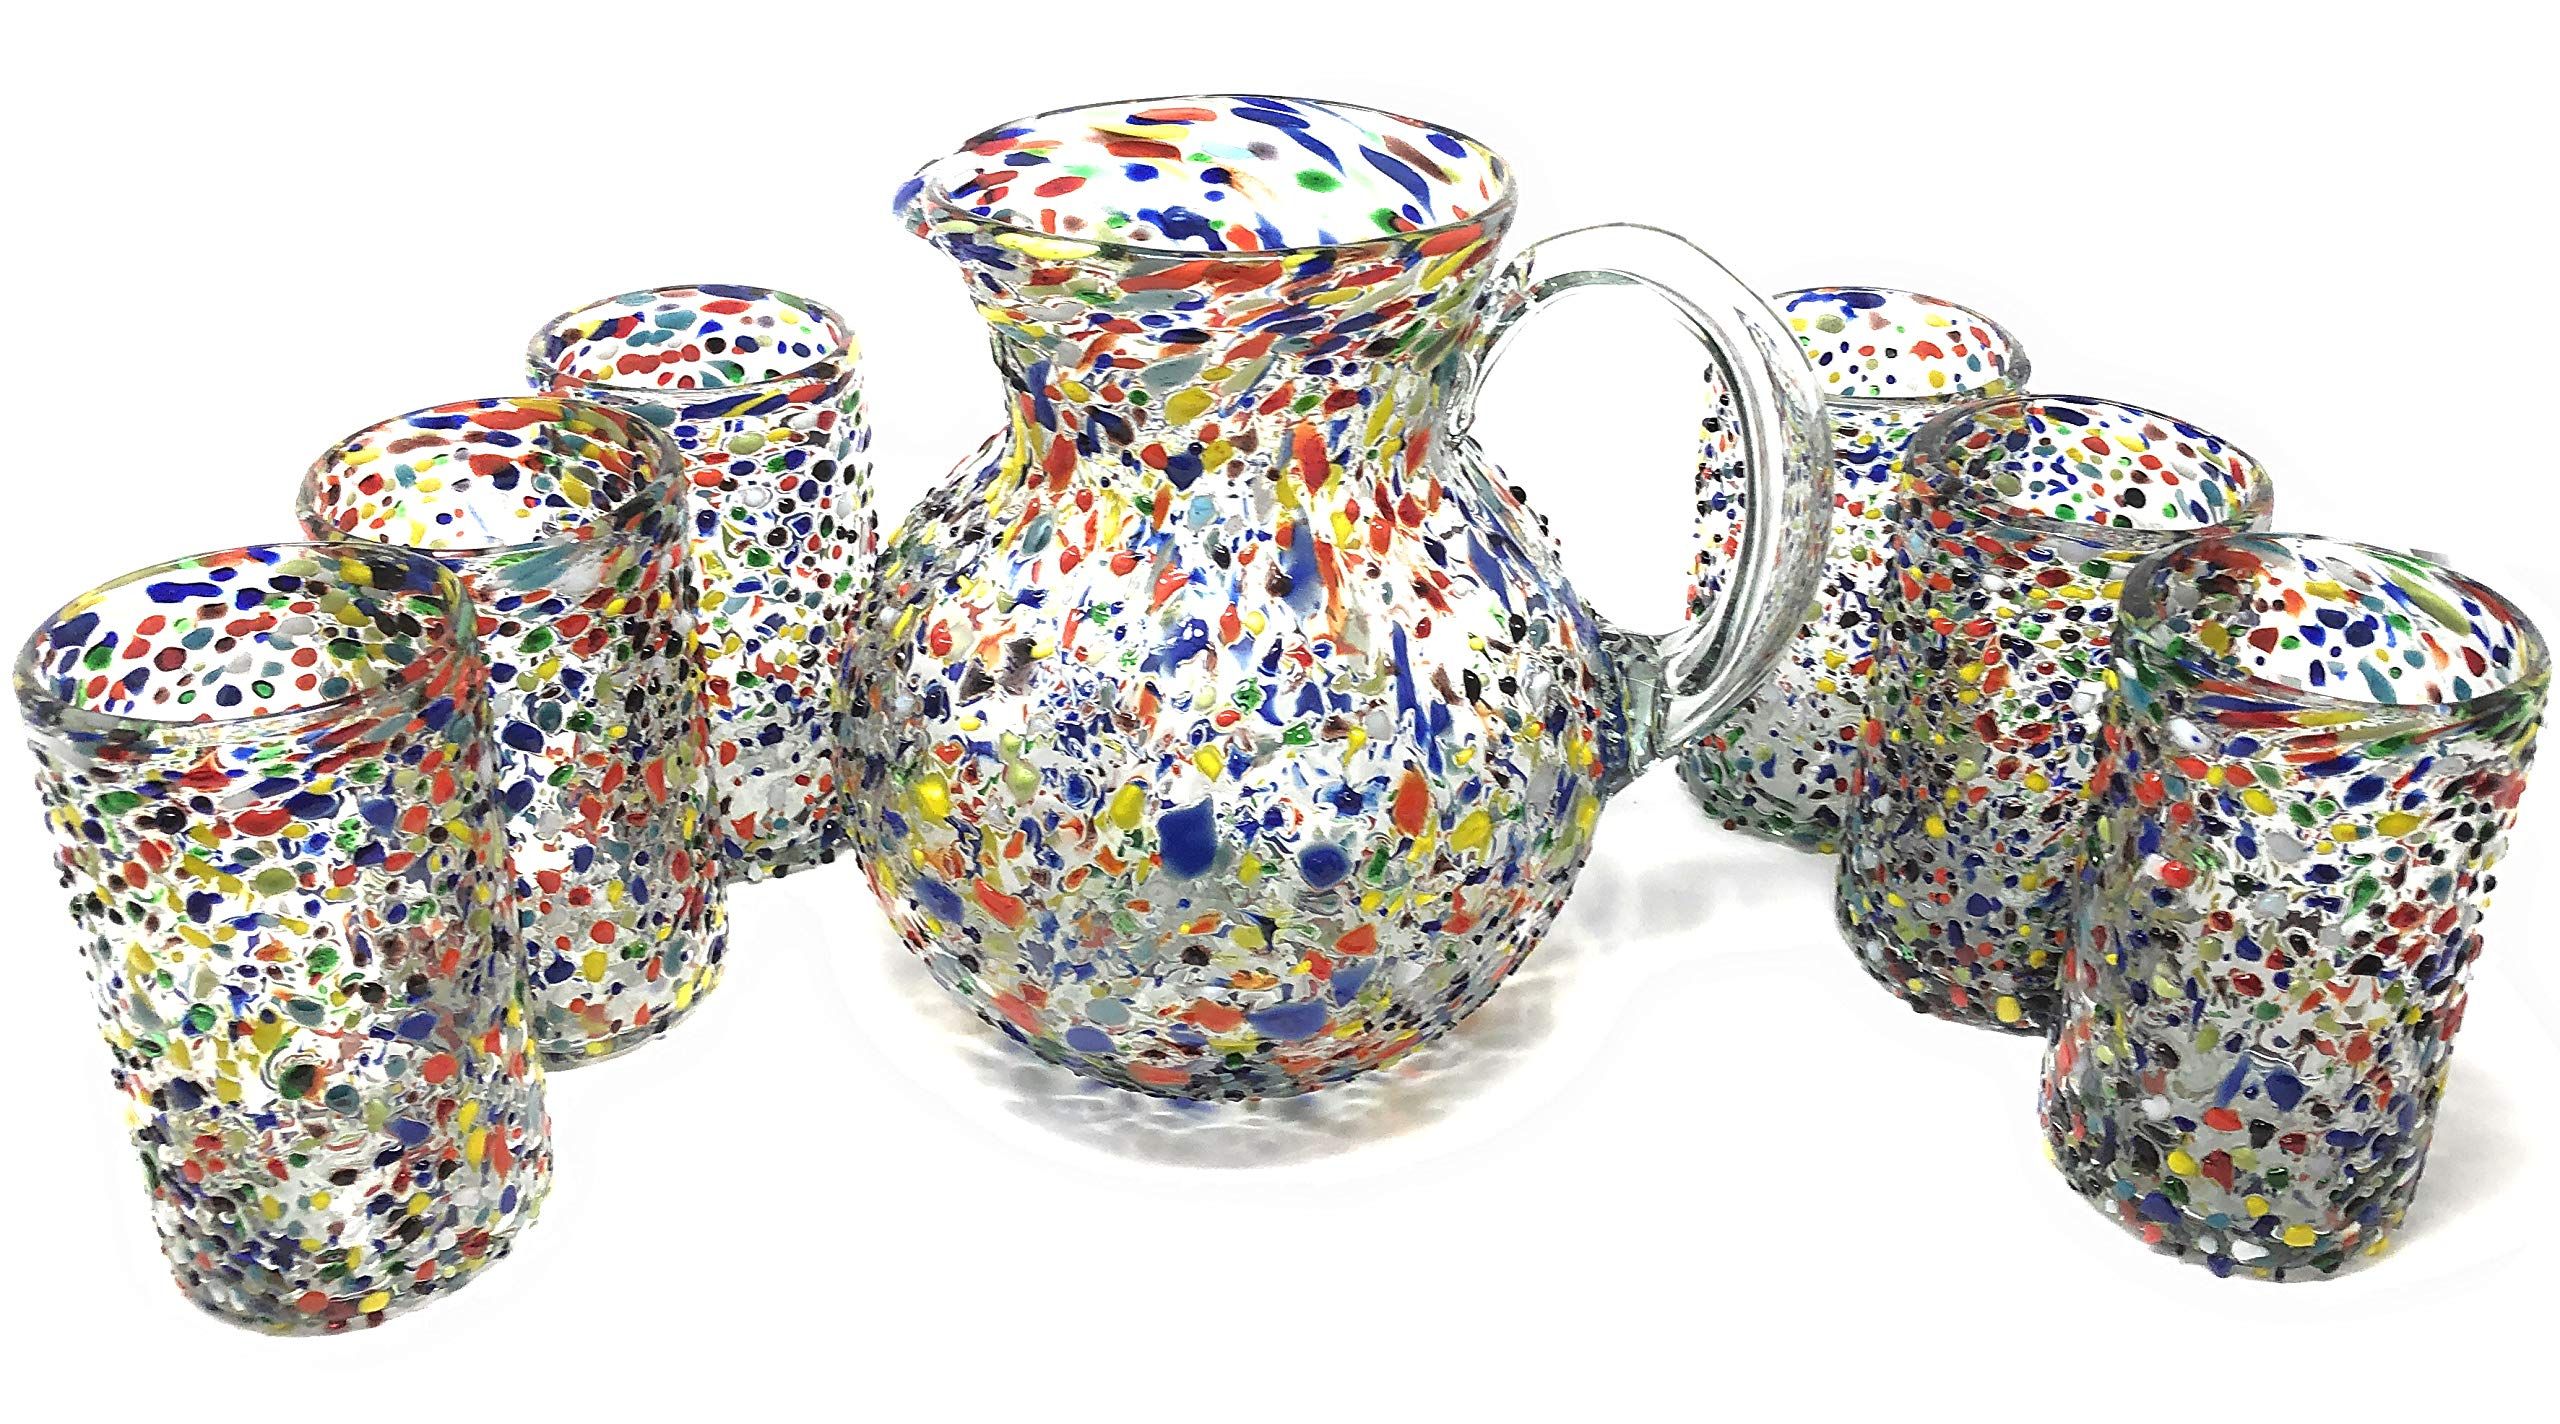 Mexican Hand Blown Glass Drinkware Set - Includes 84oz Pitcher and 6 Blown Drinking Glasses (14oz) - Confetti Rock Design